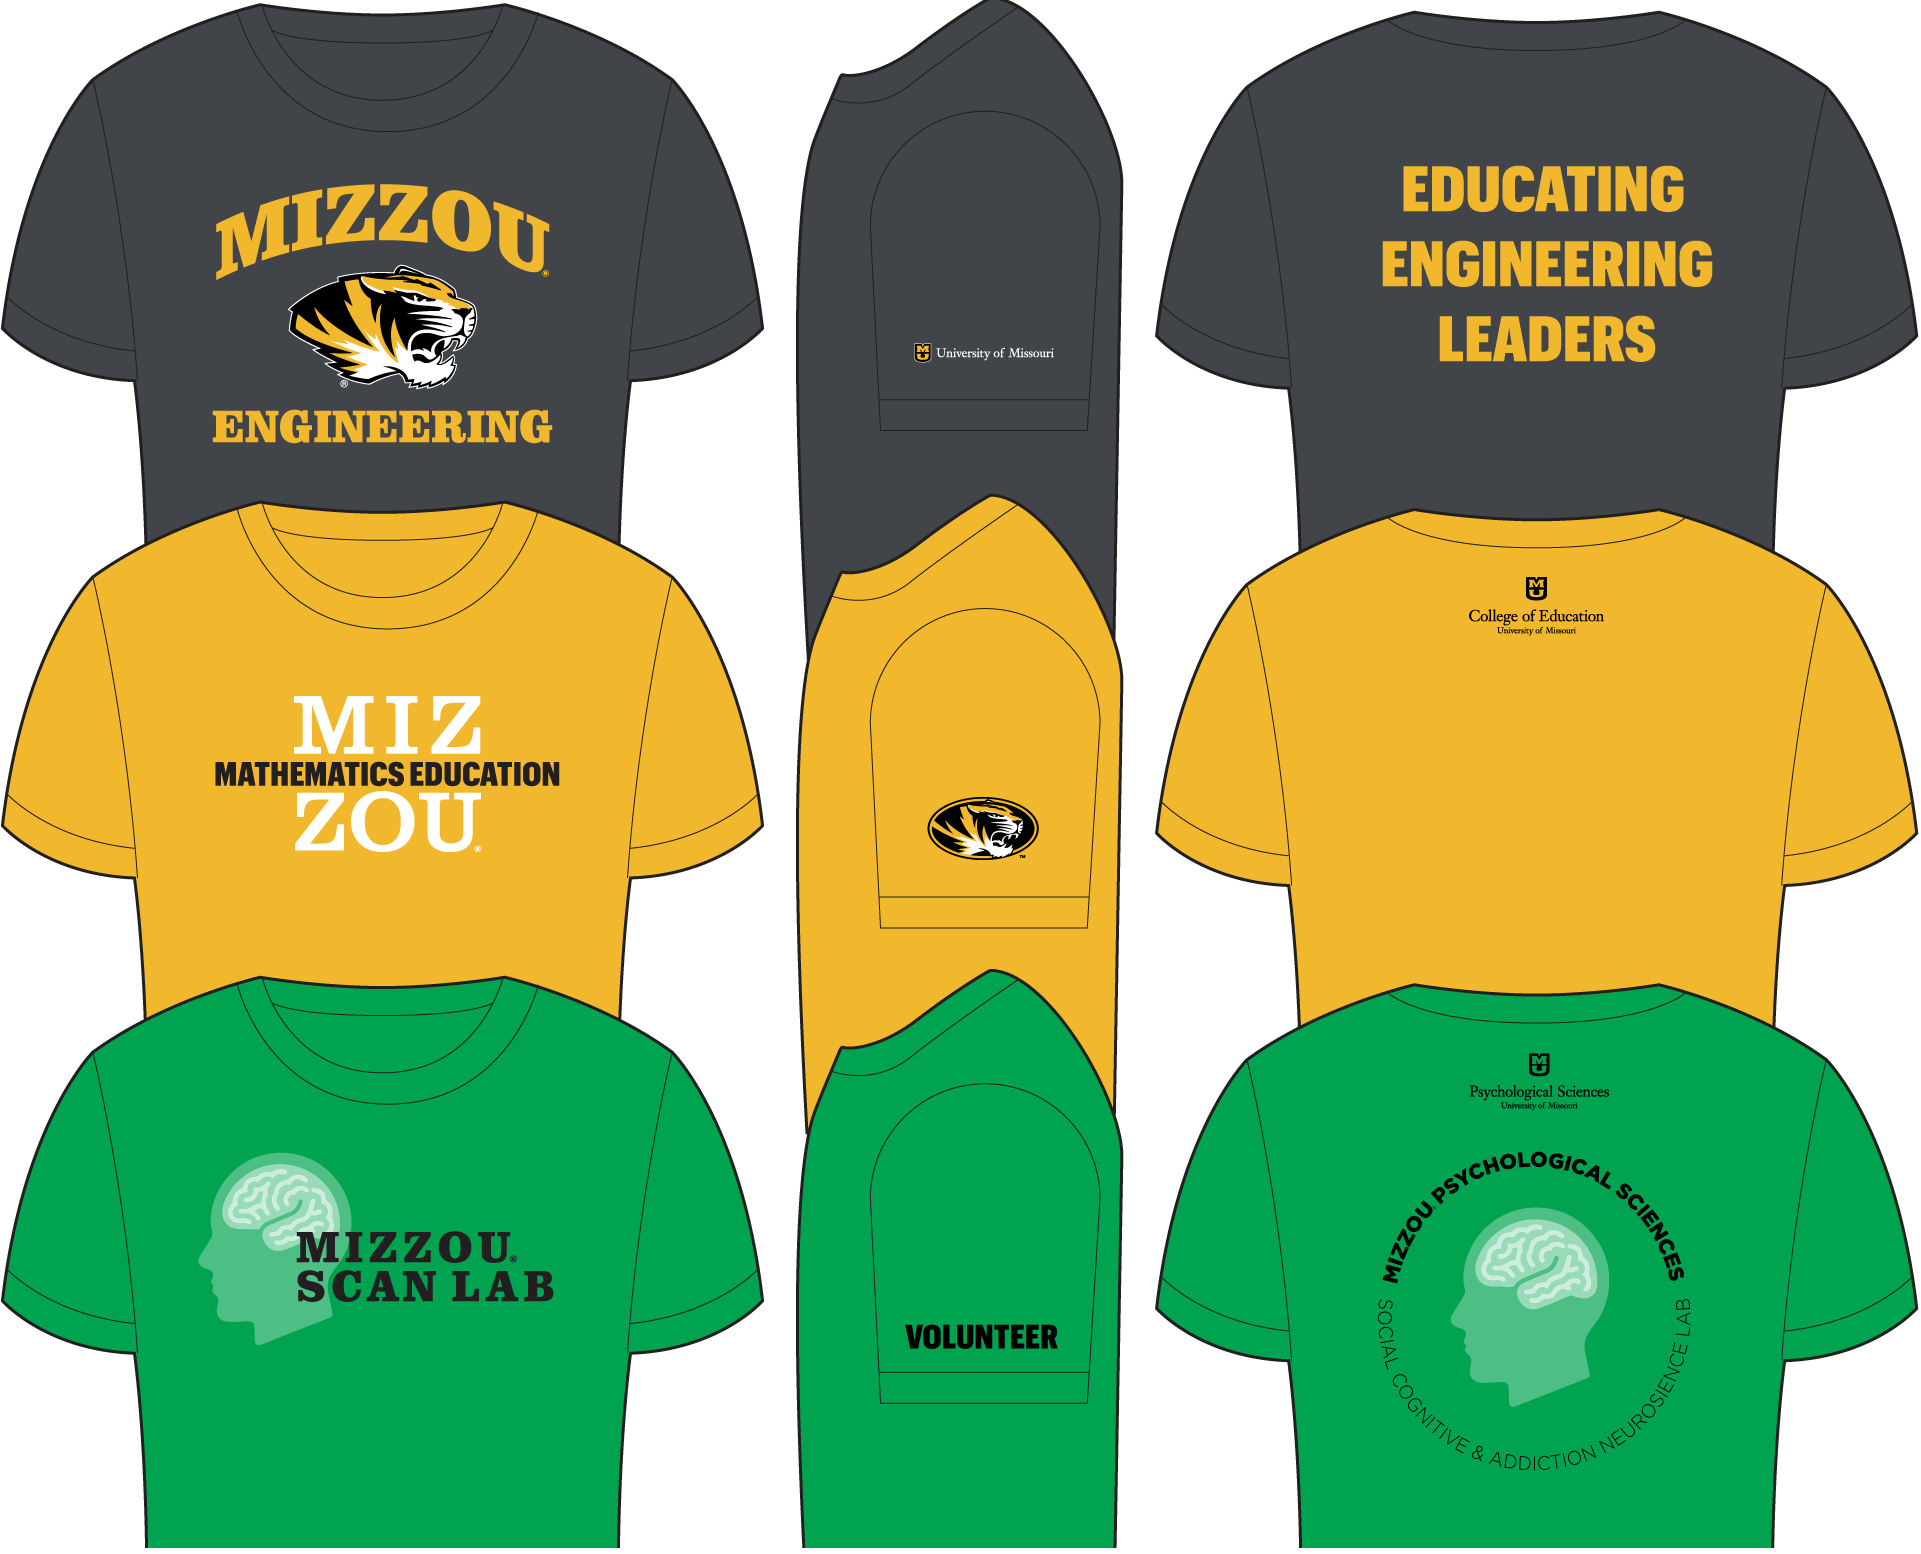 Examples of tshirts with 3-imprint locations that meet university campus department guidelines.